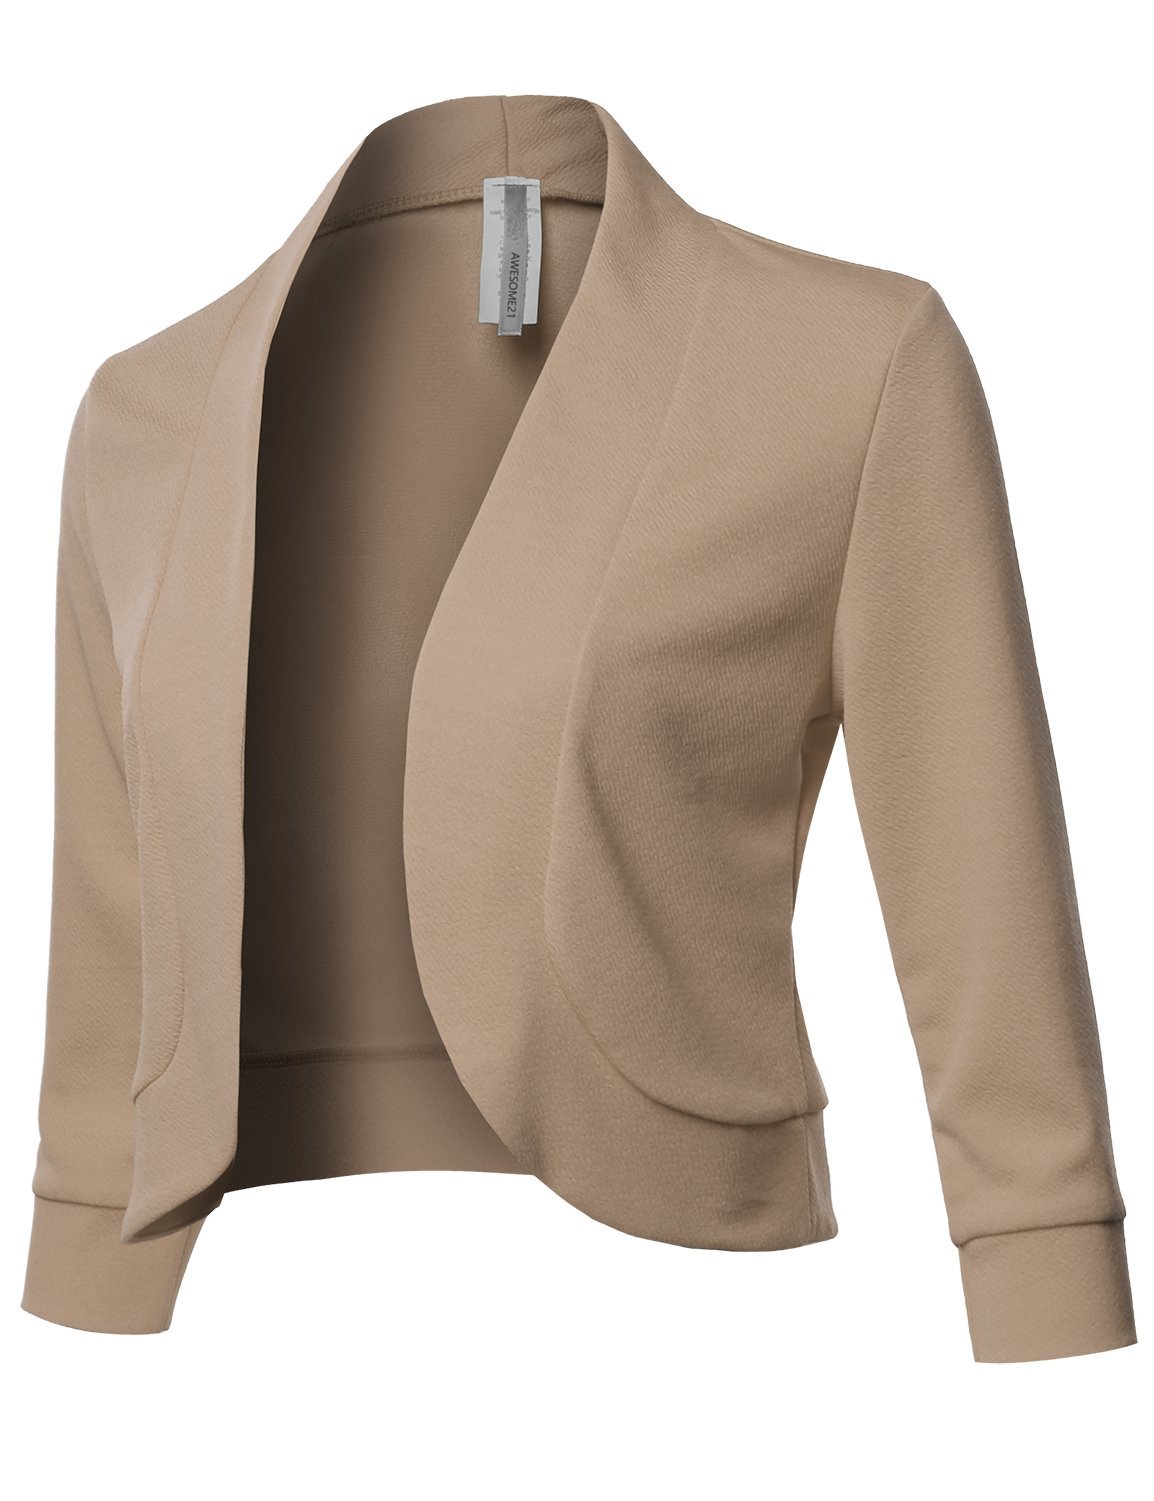 Awesome21 Solid 3/4 Sleeves Open Front Bolero Jacket Shrug - Made in USA Khaki L